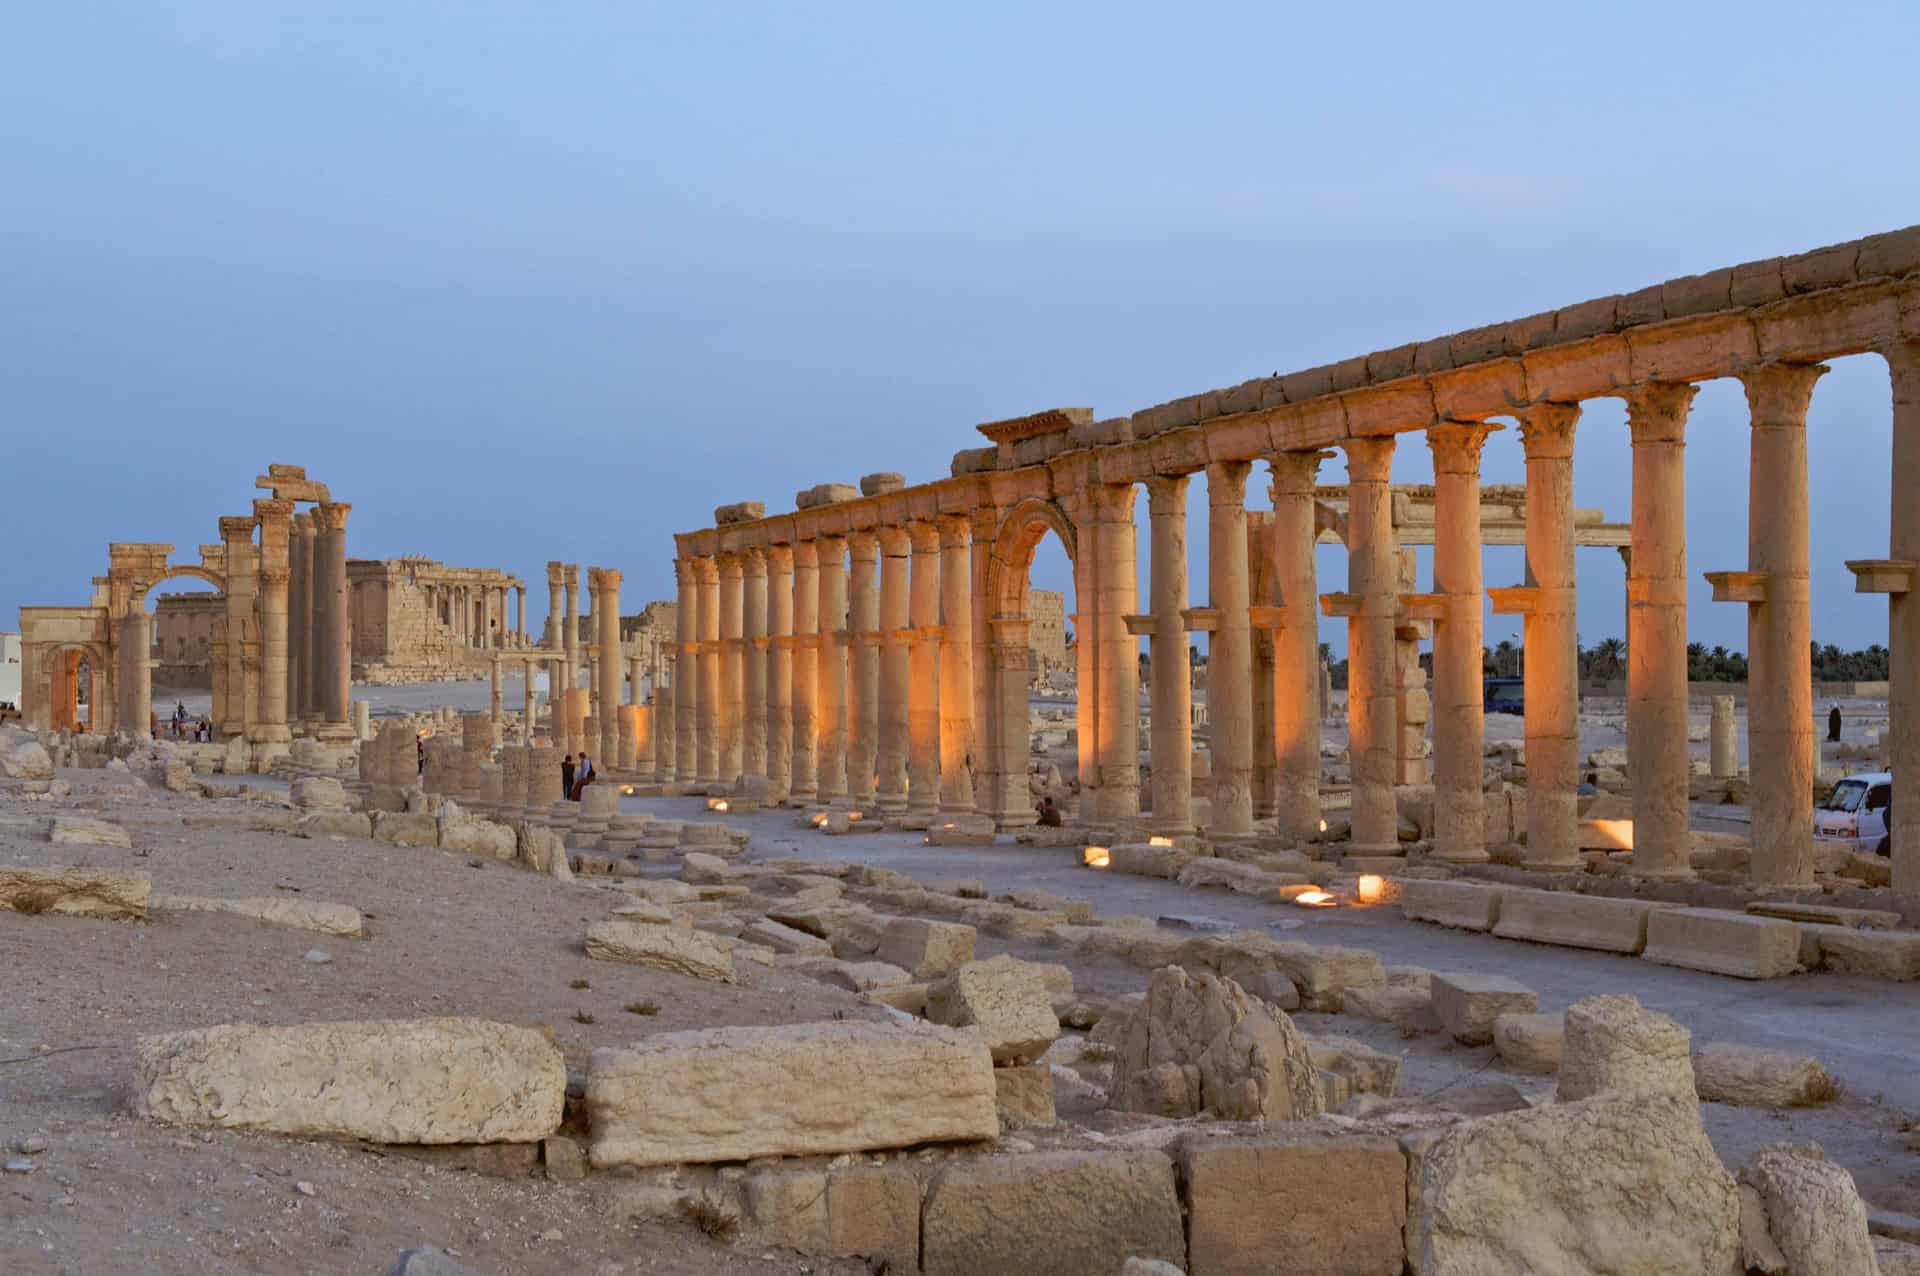 Ruins of a Roman temple in Palmyra